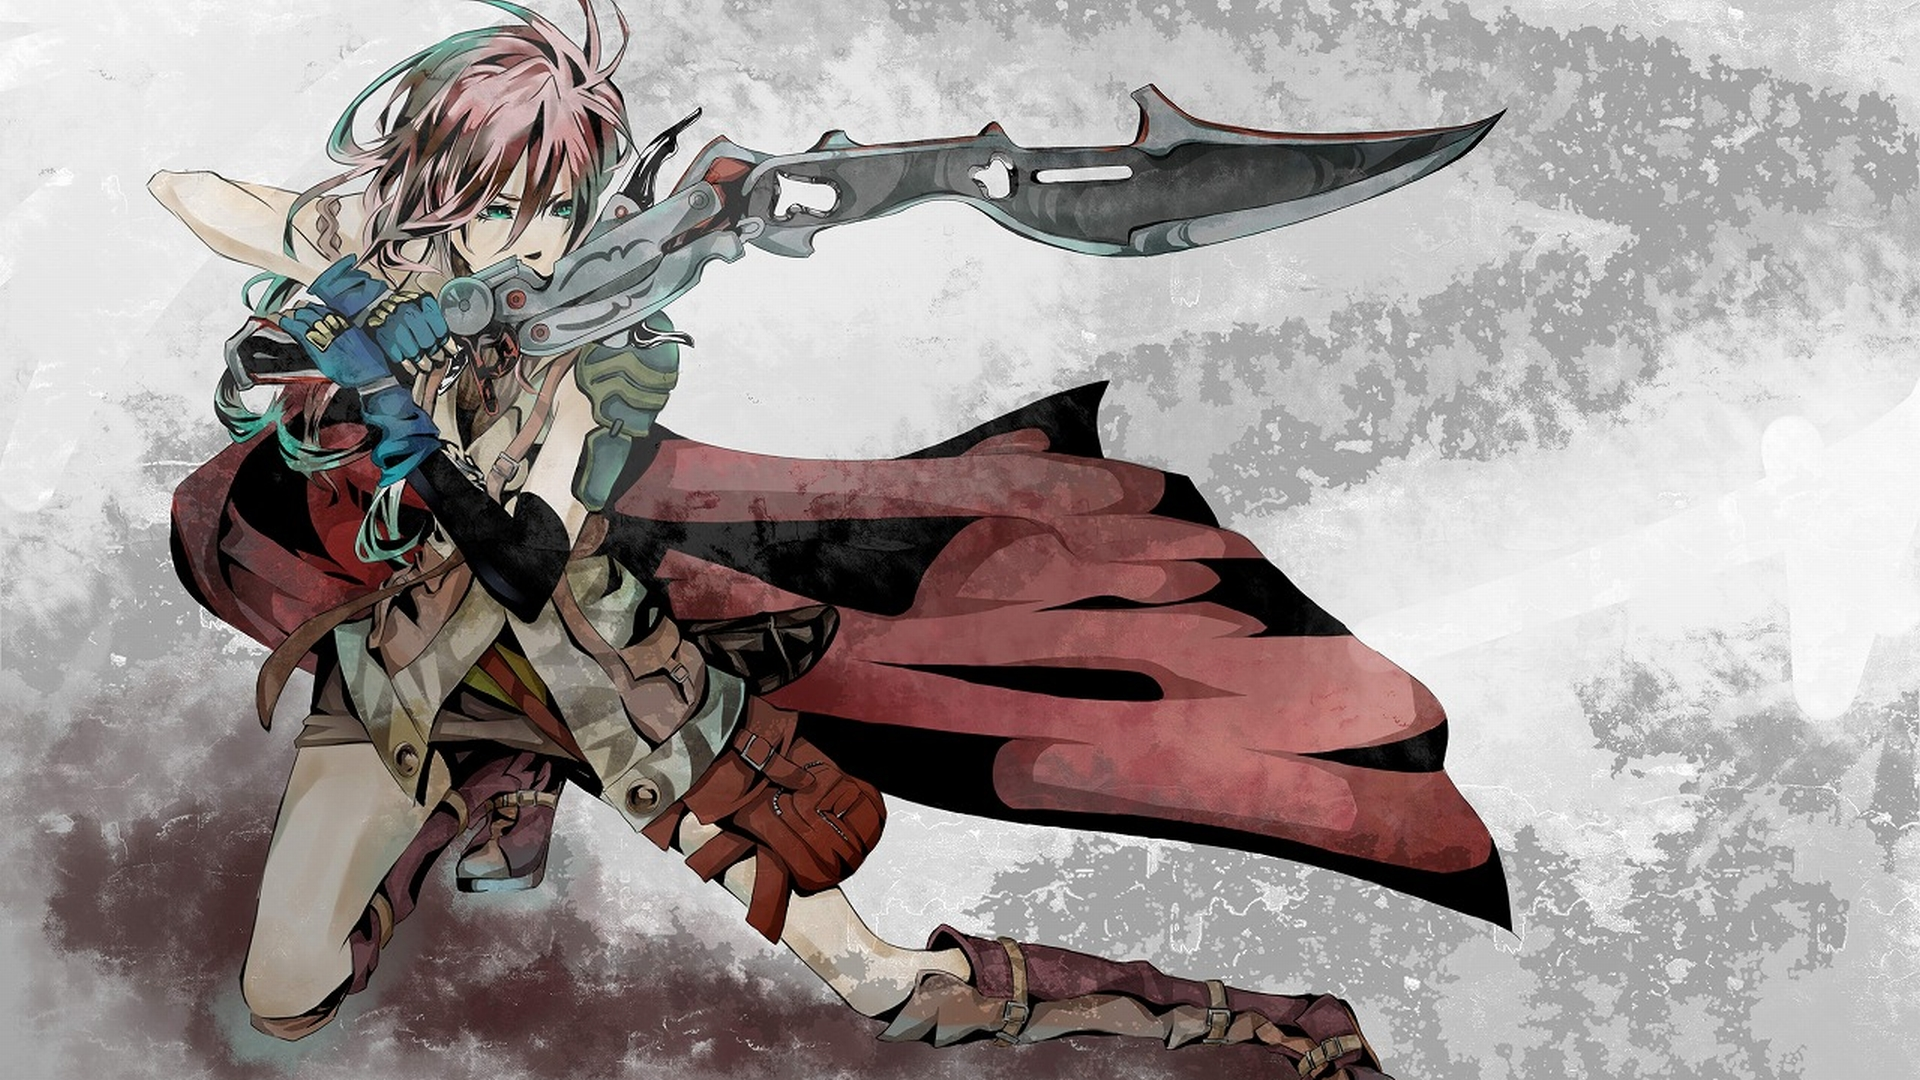 Anime - Unknown  - Final Fantasy Xiii - Lightning Wallpaper